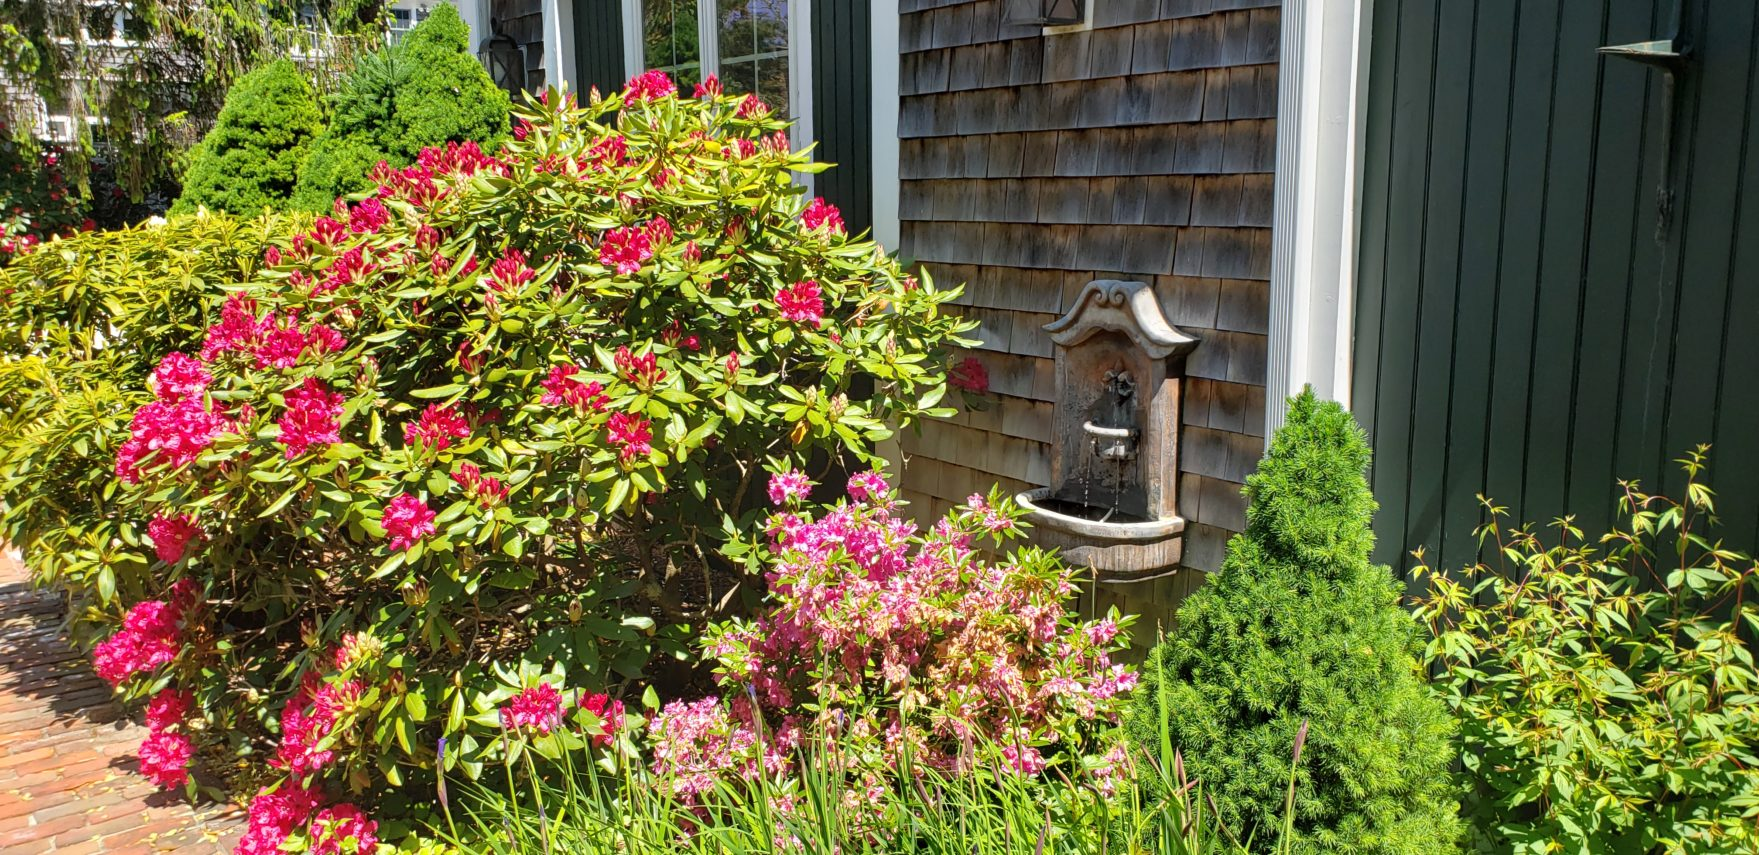 Azalea bushes in bloom at Captain's House Inn, Cape Cod